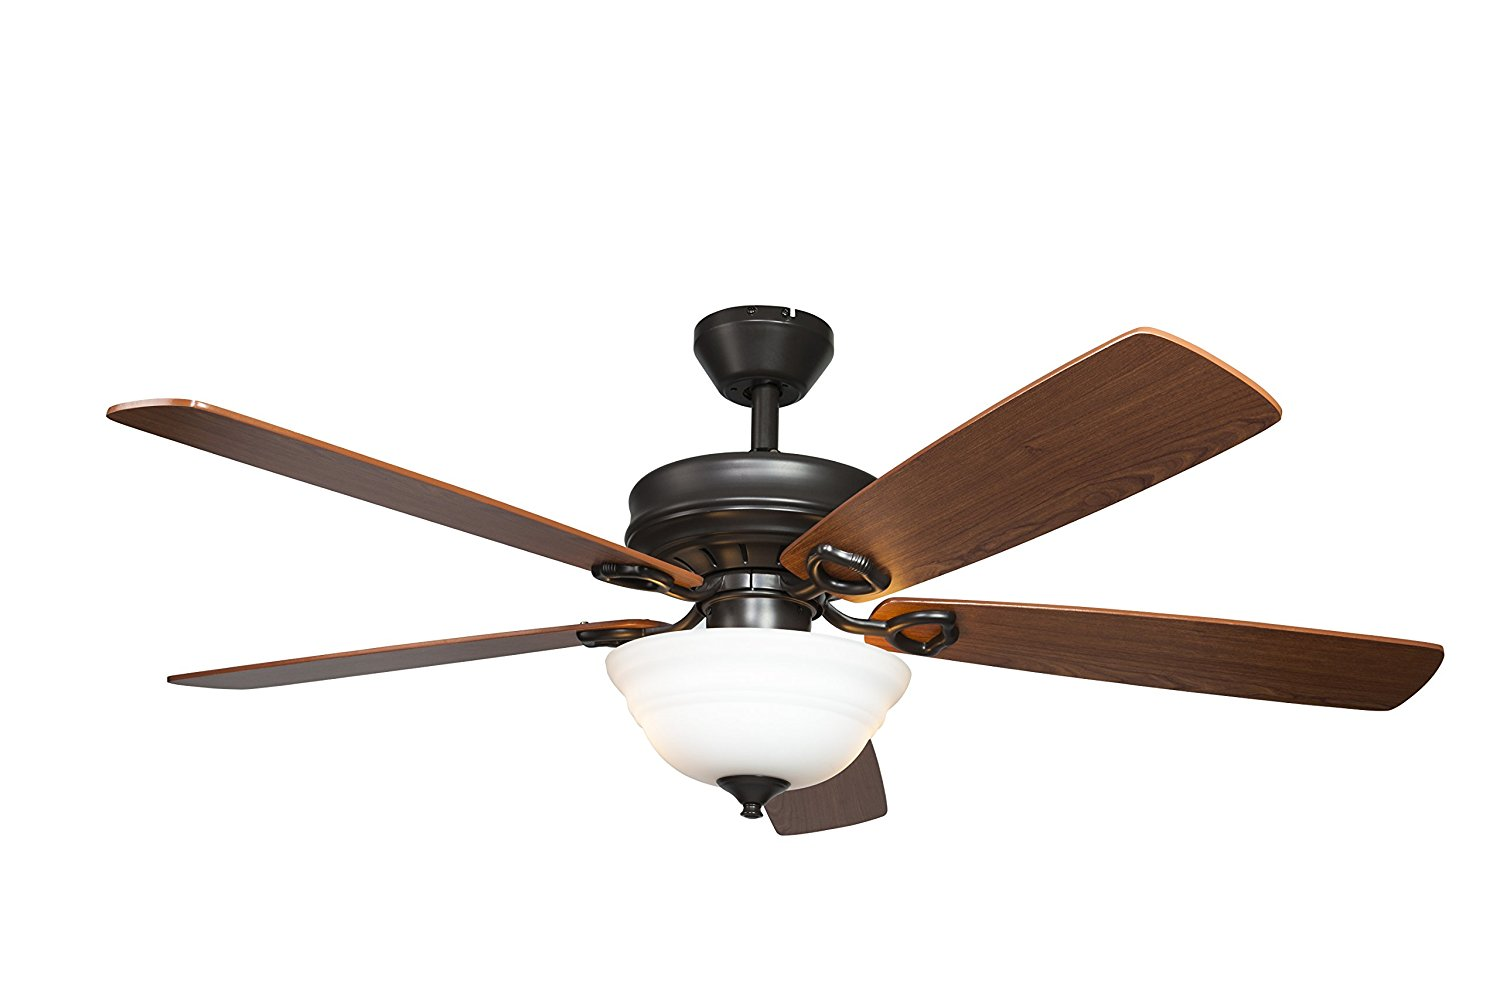 Control Ceiling Fan : Ceiling fans with remote control benefit cool ideas for home